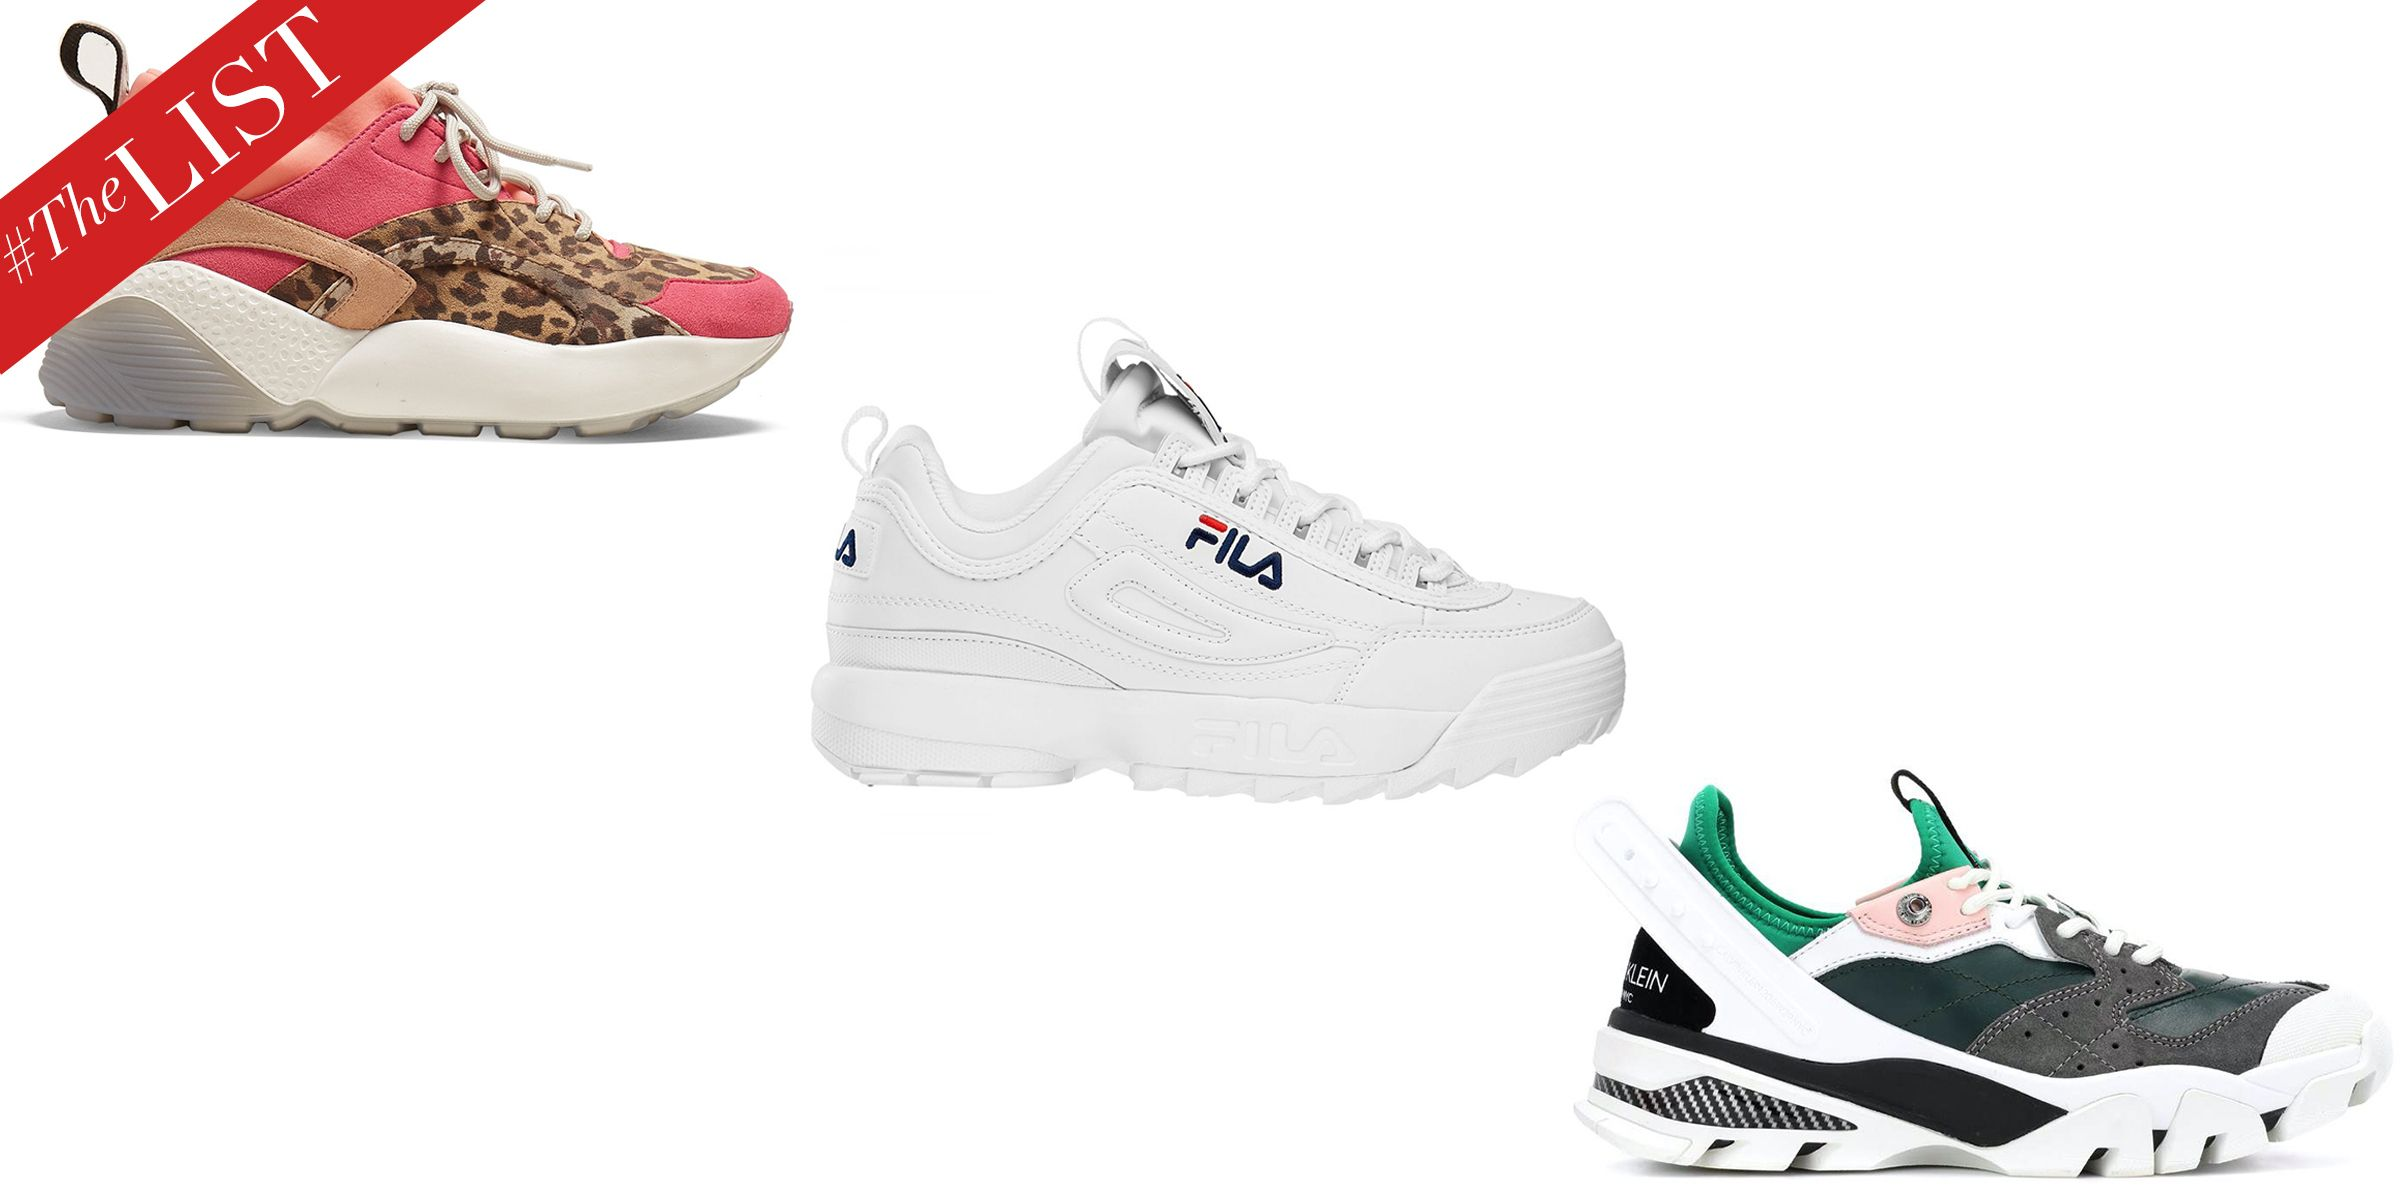 fila shoes trend 2019 hairstyles